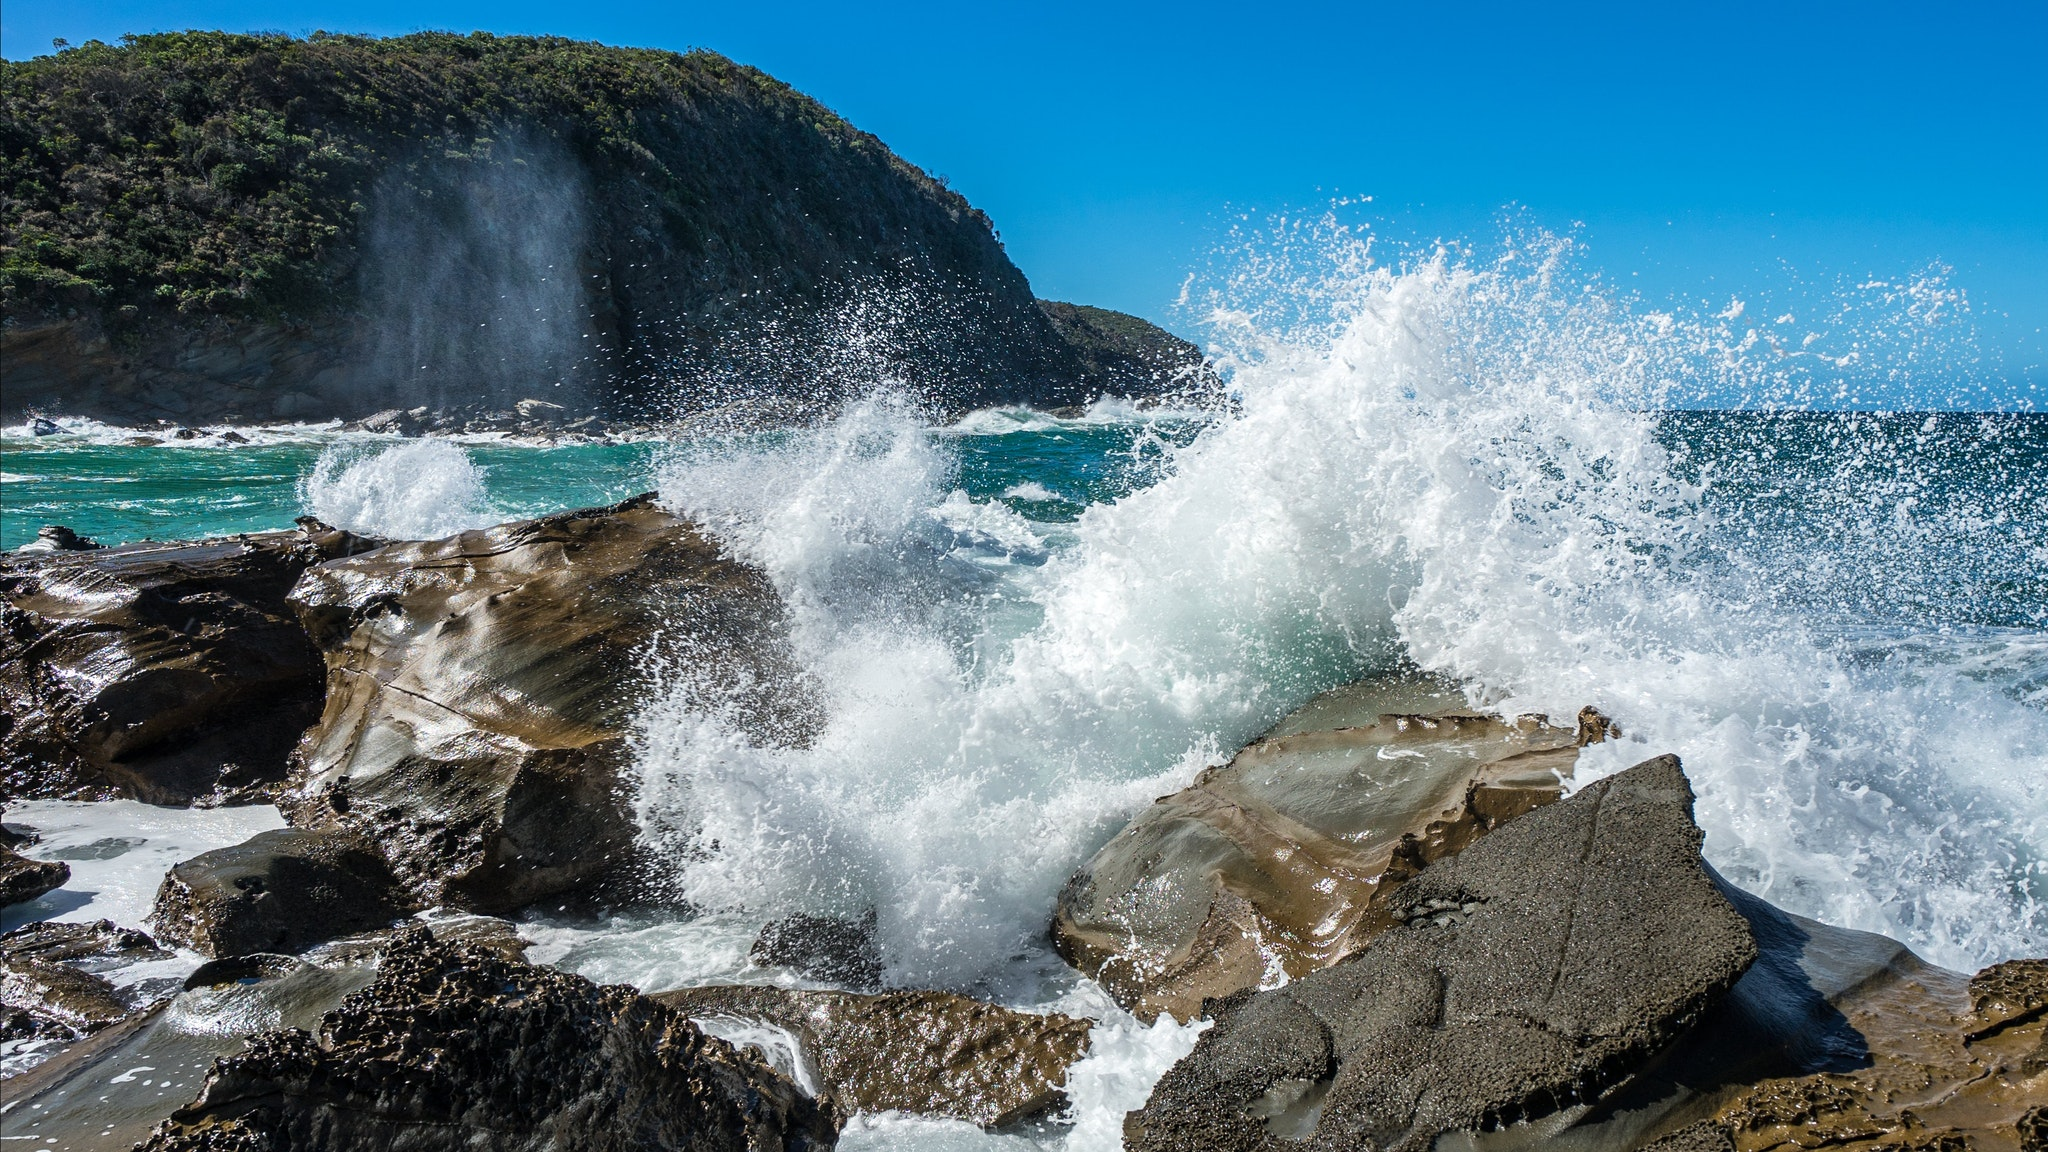 Sunny day at Blanket bay, waves crashing on rocks